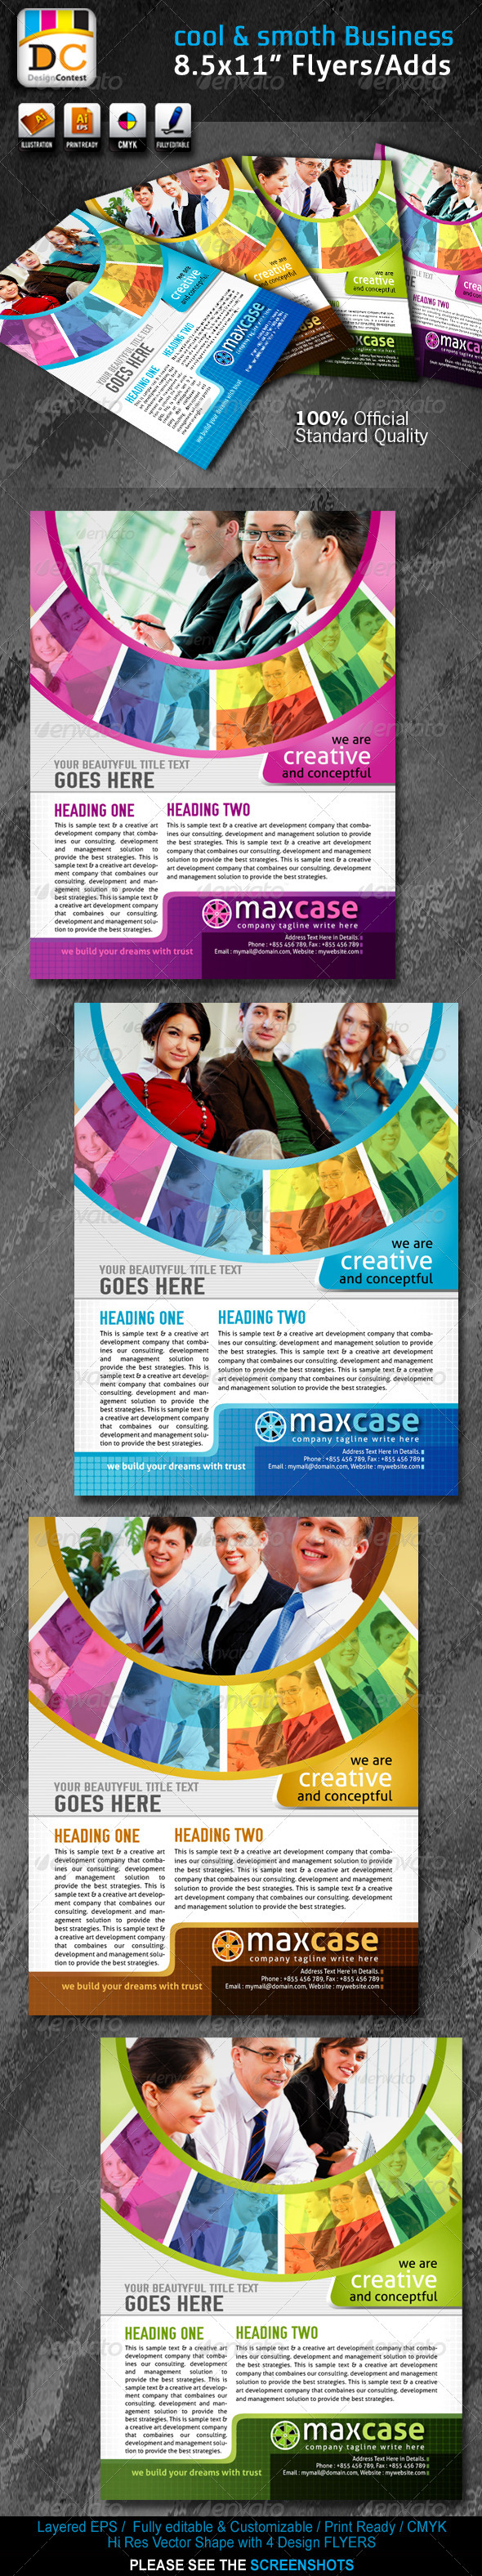 Cool & Smooth Corporate Business Flyers/Adds - Corporate Flyers